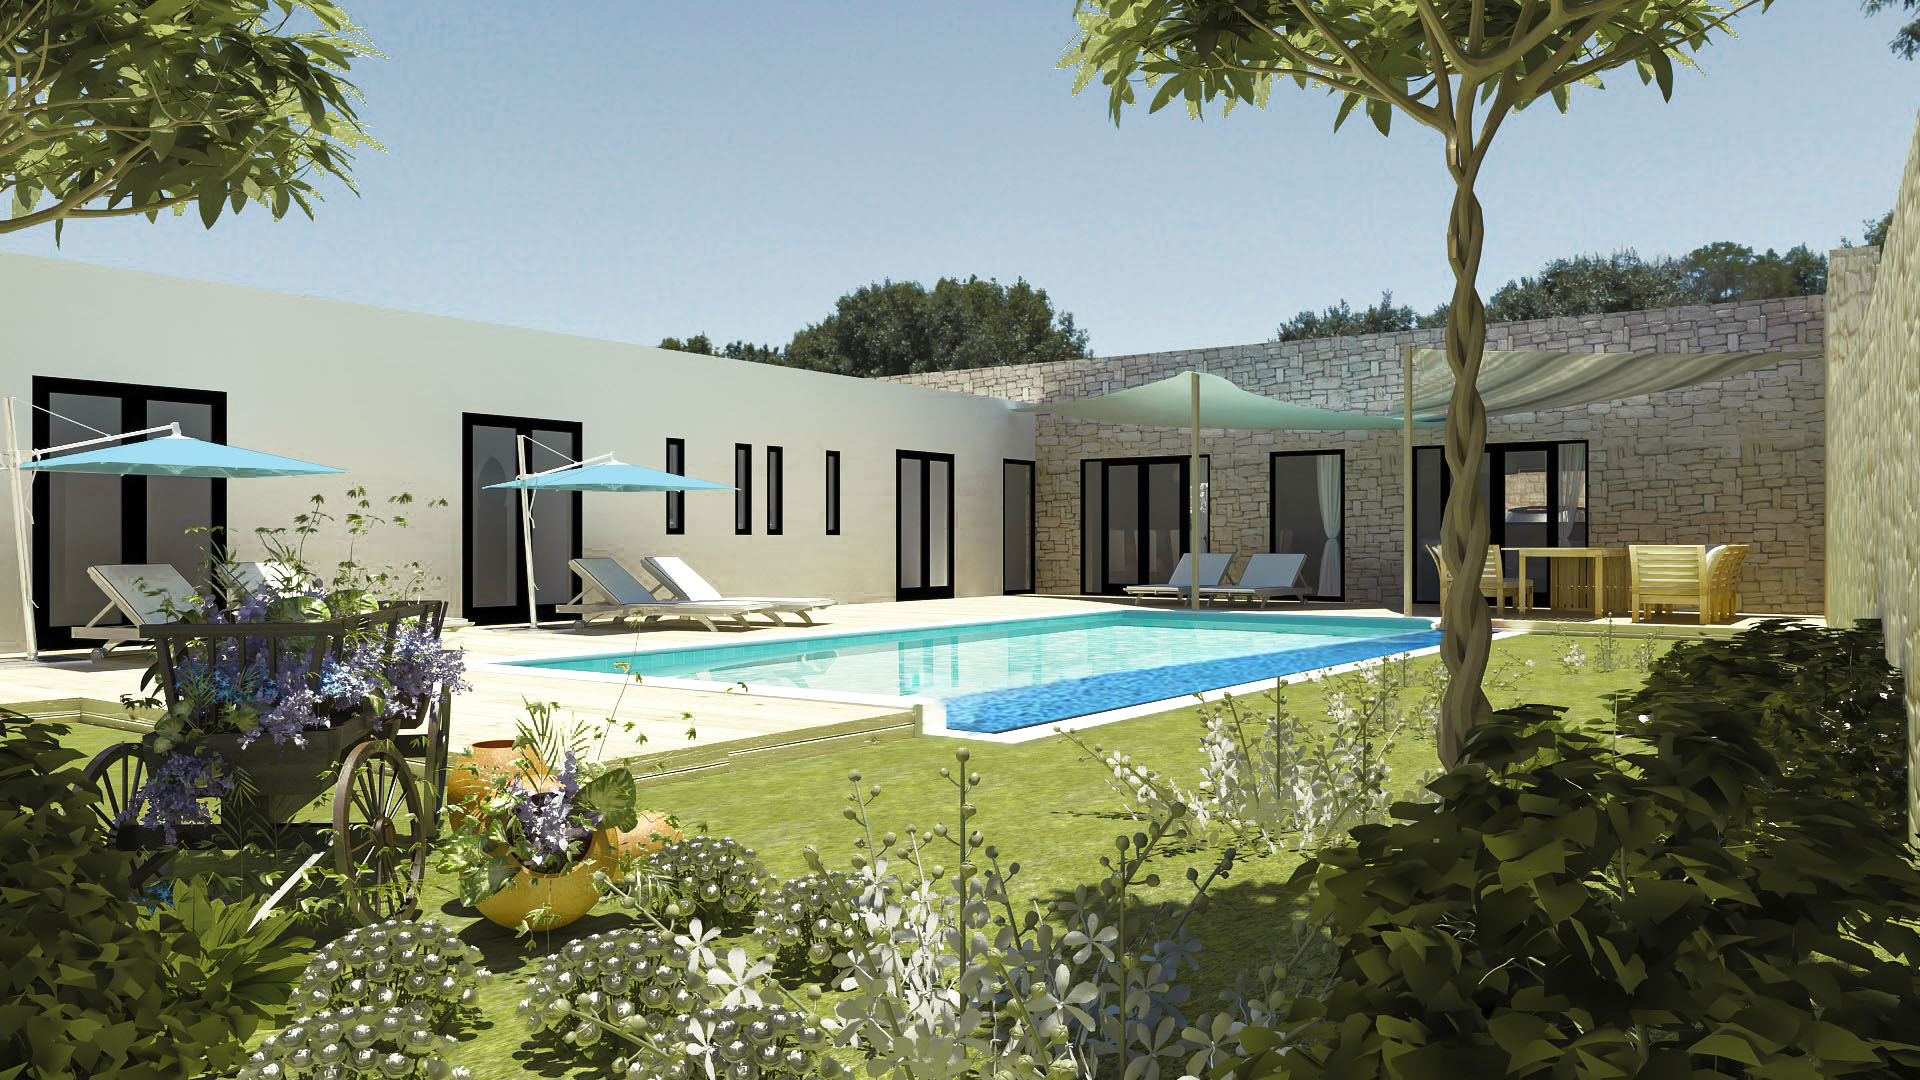 20-01-03-VV Villa to build 200 m² Garden 1129 m² Optional Lake 80 m² and 3 wooden bungalows